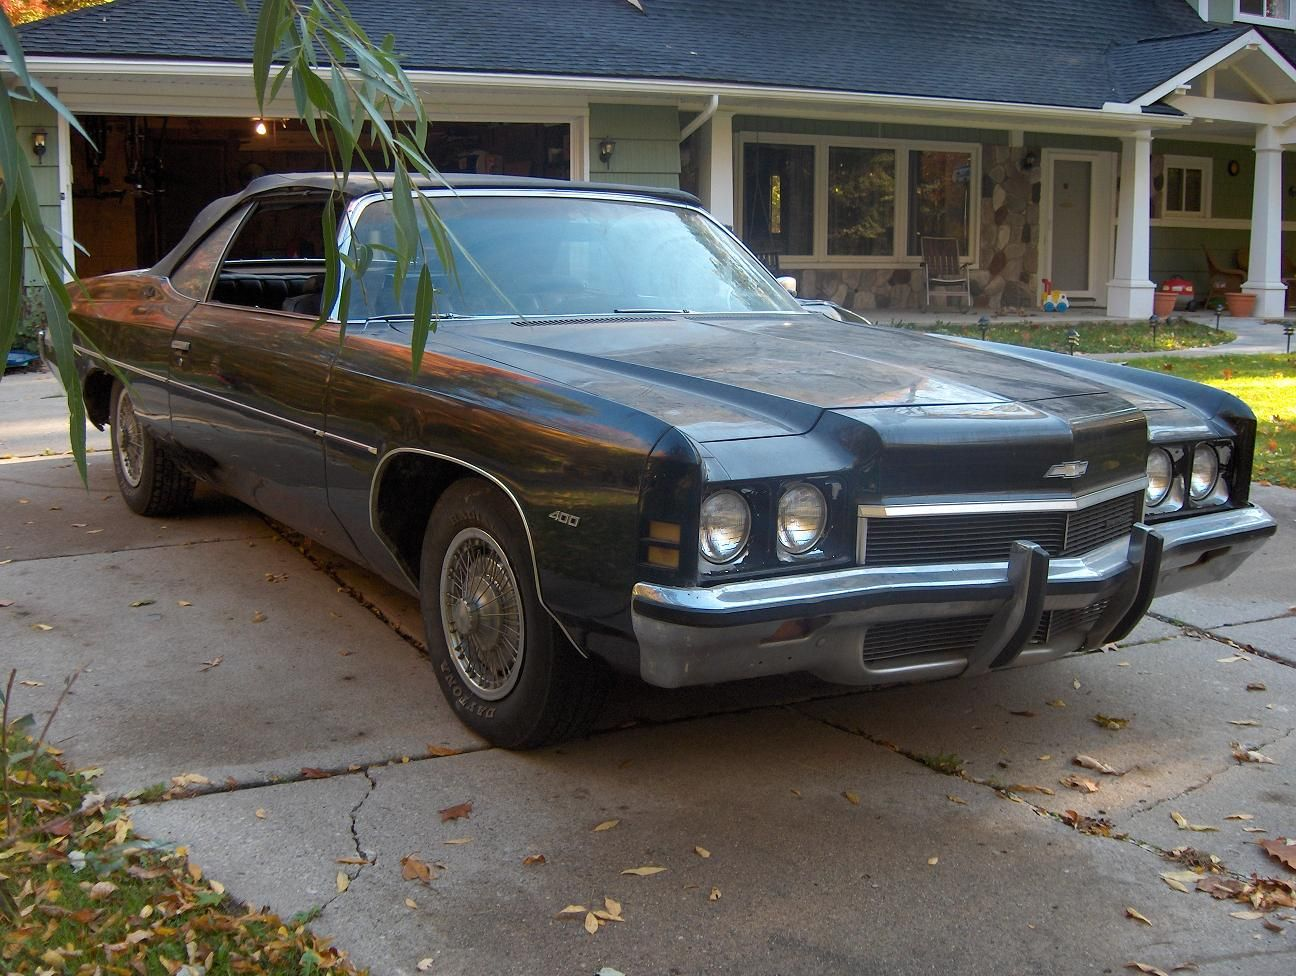 1972 Caprice Convertible Craigslist | Joy Studio Design ...